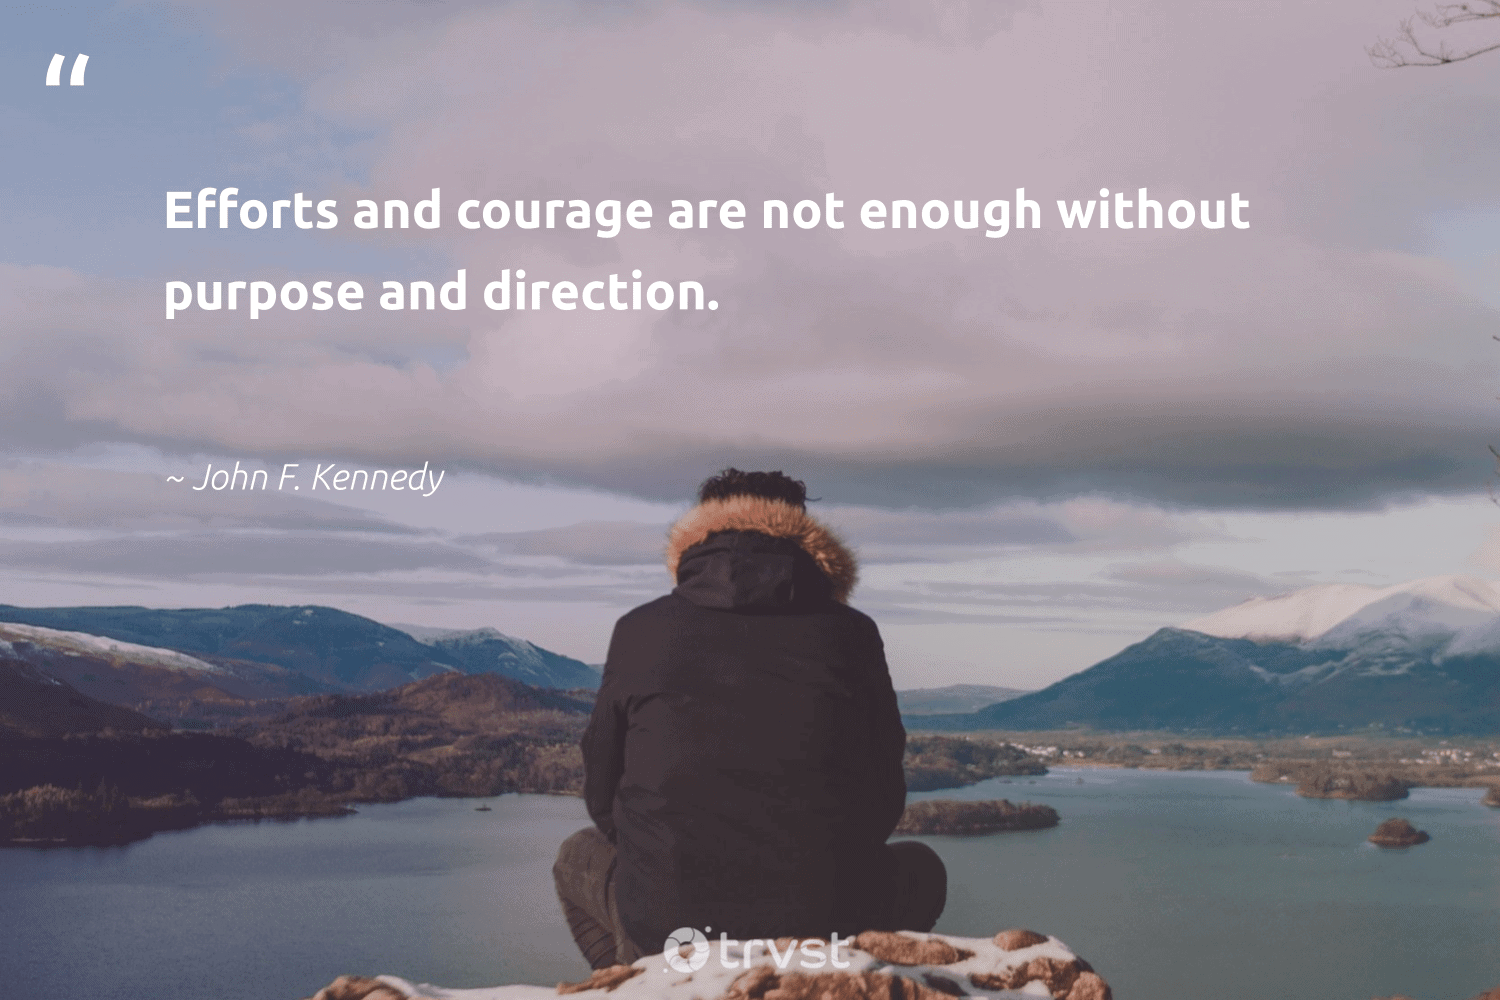 """""""Efforts and courage are not enough without purpose and direction.""""  - John F. Kennedy #trvst #quotes #purpose #findpurpose #begreat #nevergiveup #impact #purposedriven #health #togetherwecan #socialimpact #findingpupose"""